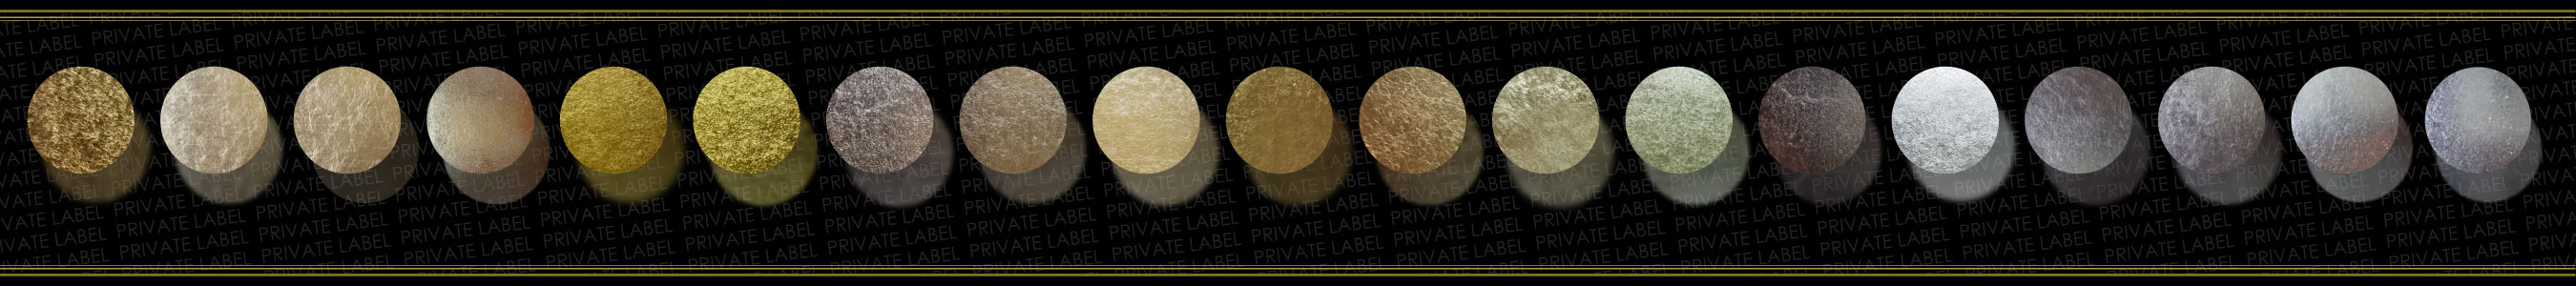 Metals Cigars of Private Label